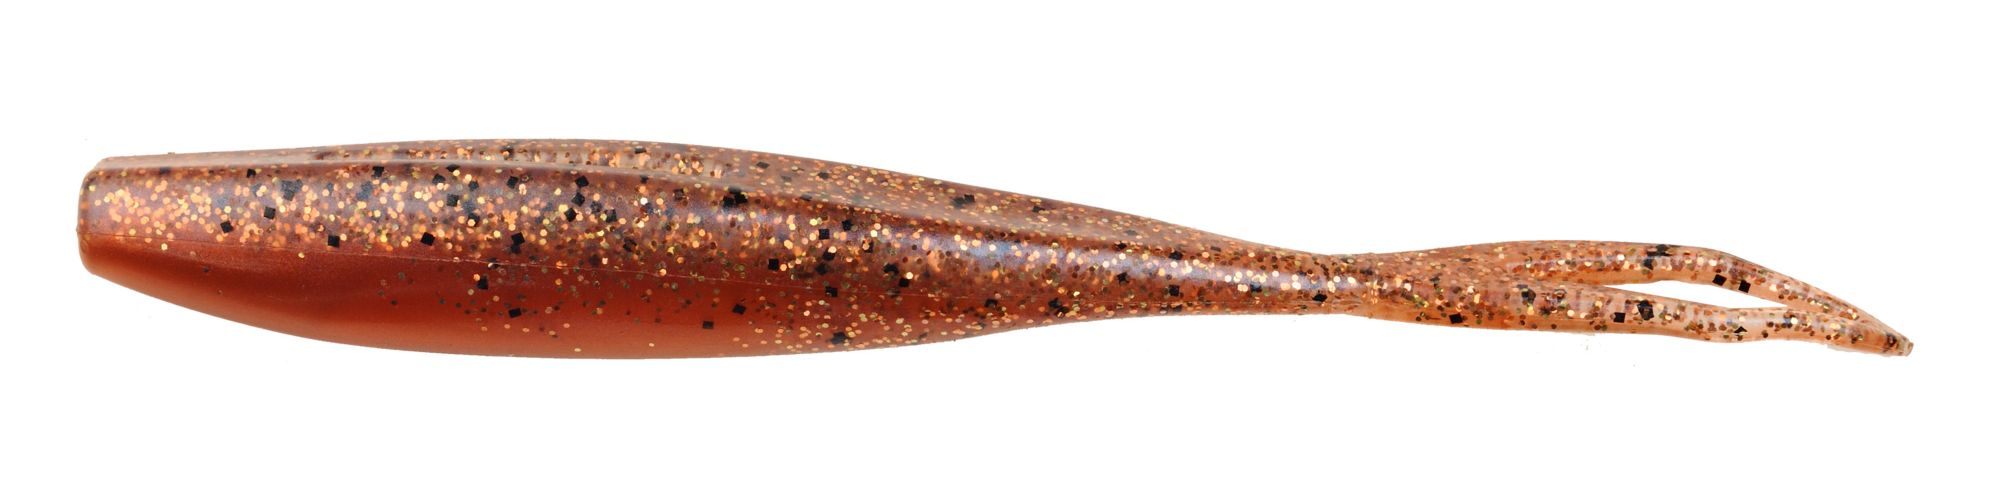 D.O.A. C.A.L. Jerk Soft Baits, 5 1/2 IN., Brown